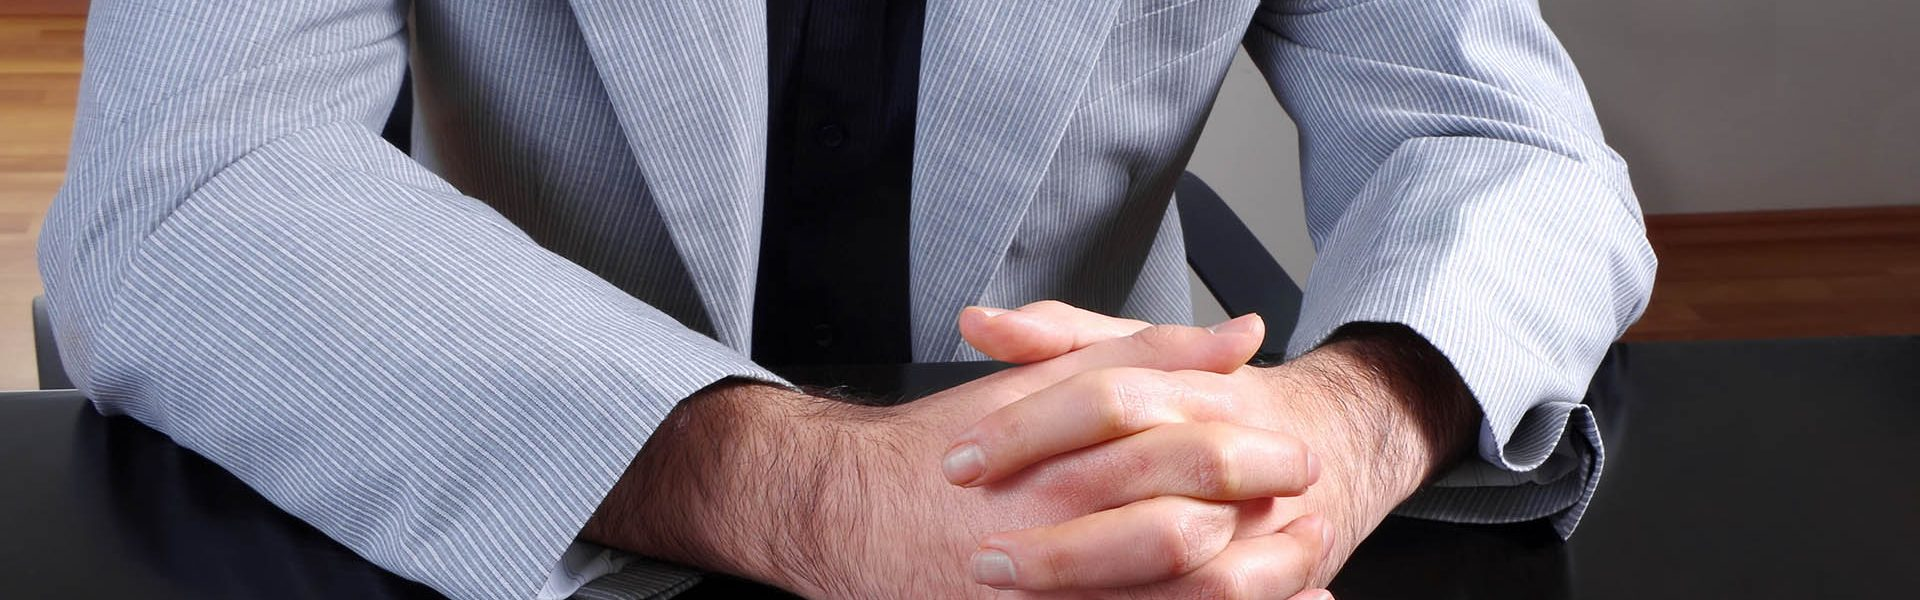 young man in office body language waiting listening closeup